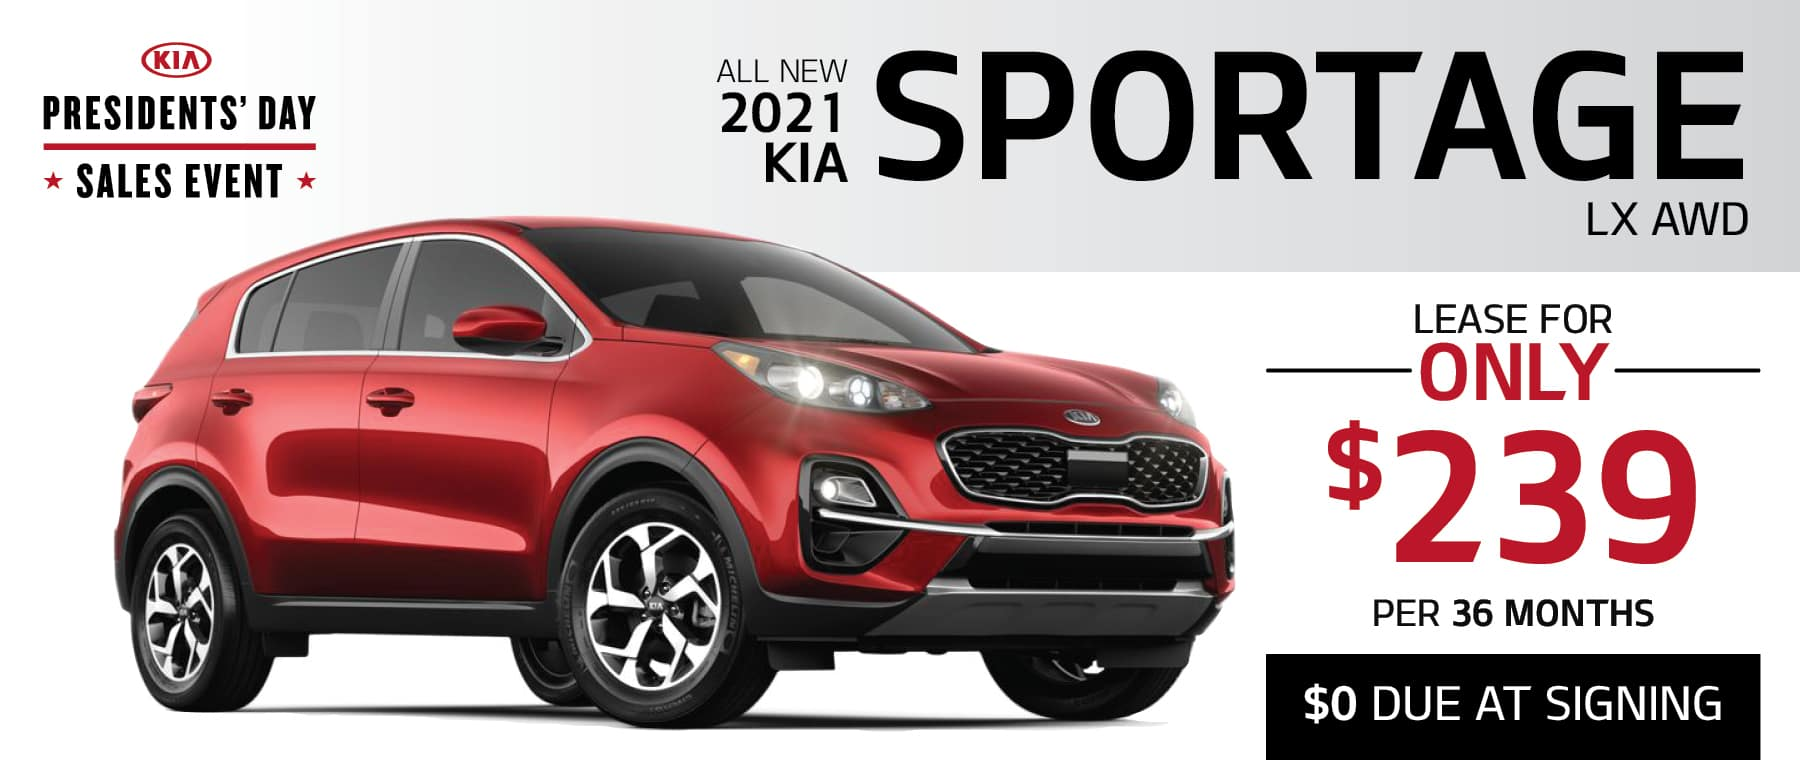 2021 KIA Sportage LX AWD - Special Offer Announced!